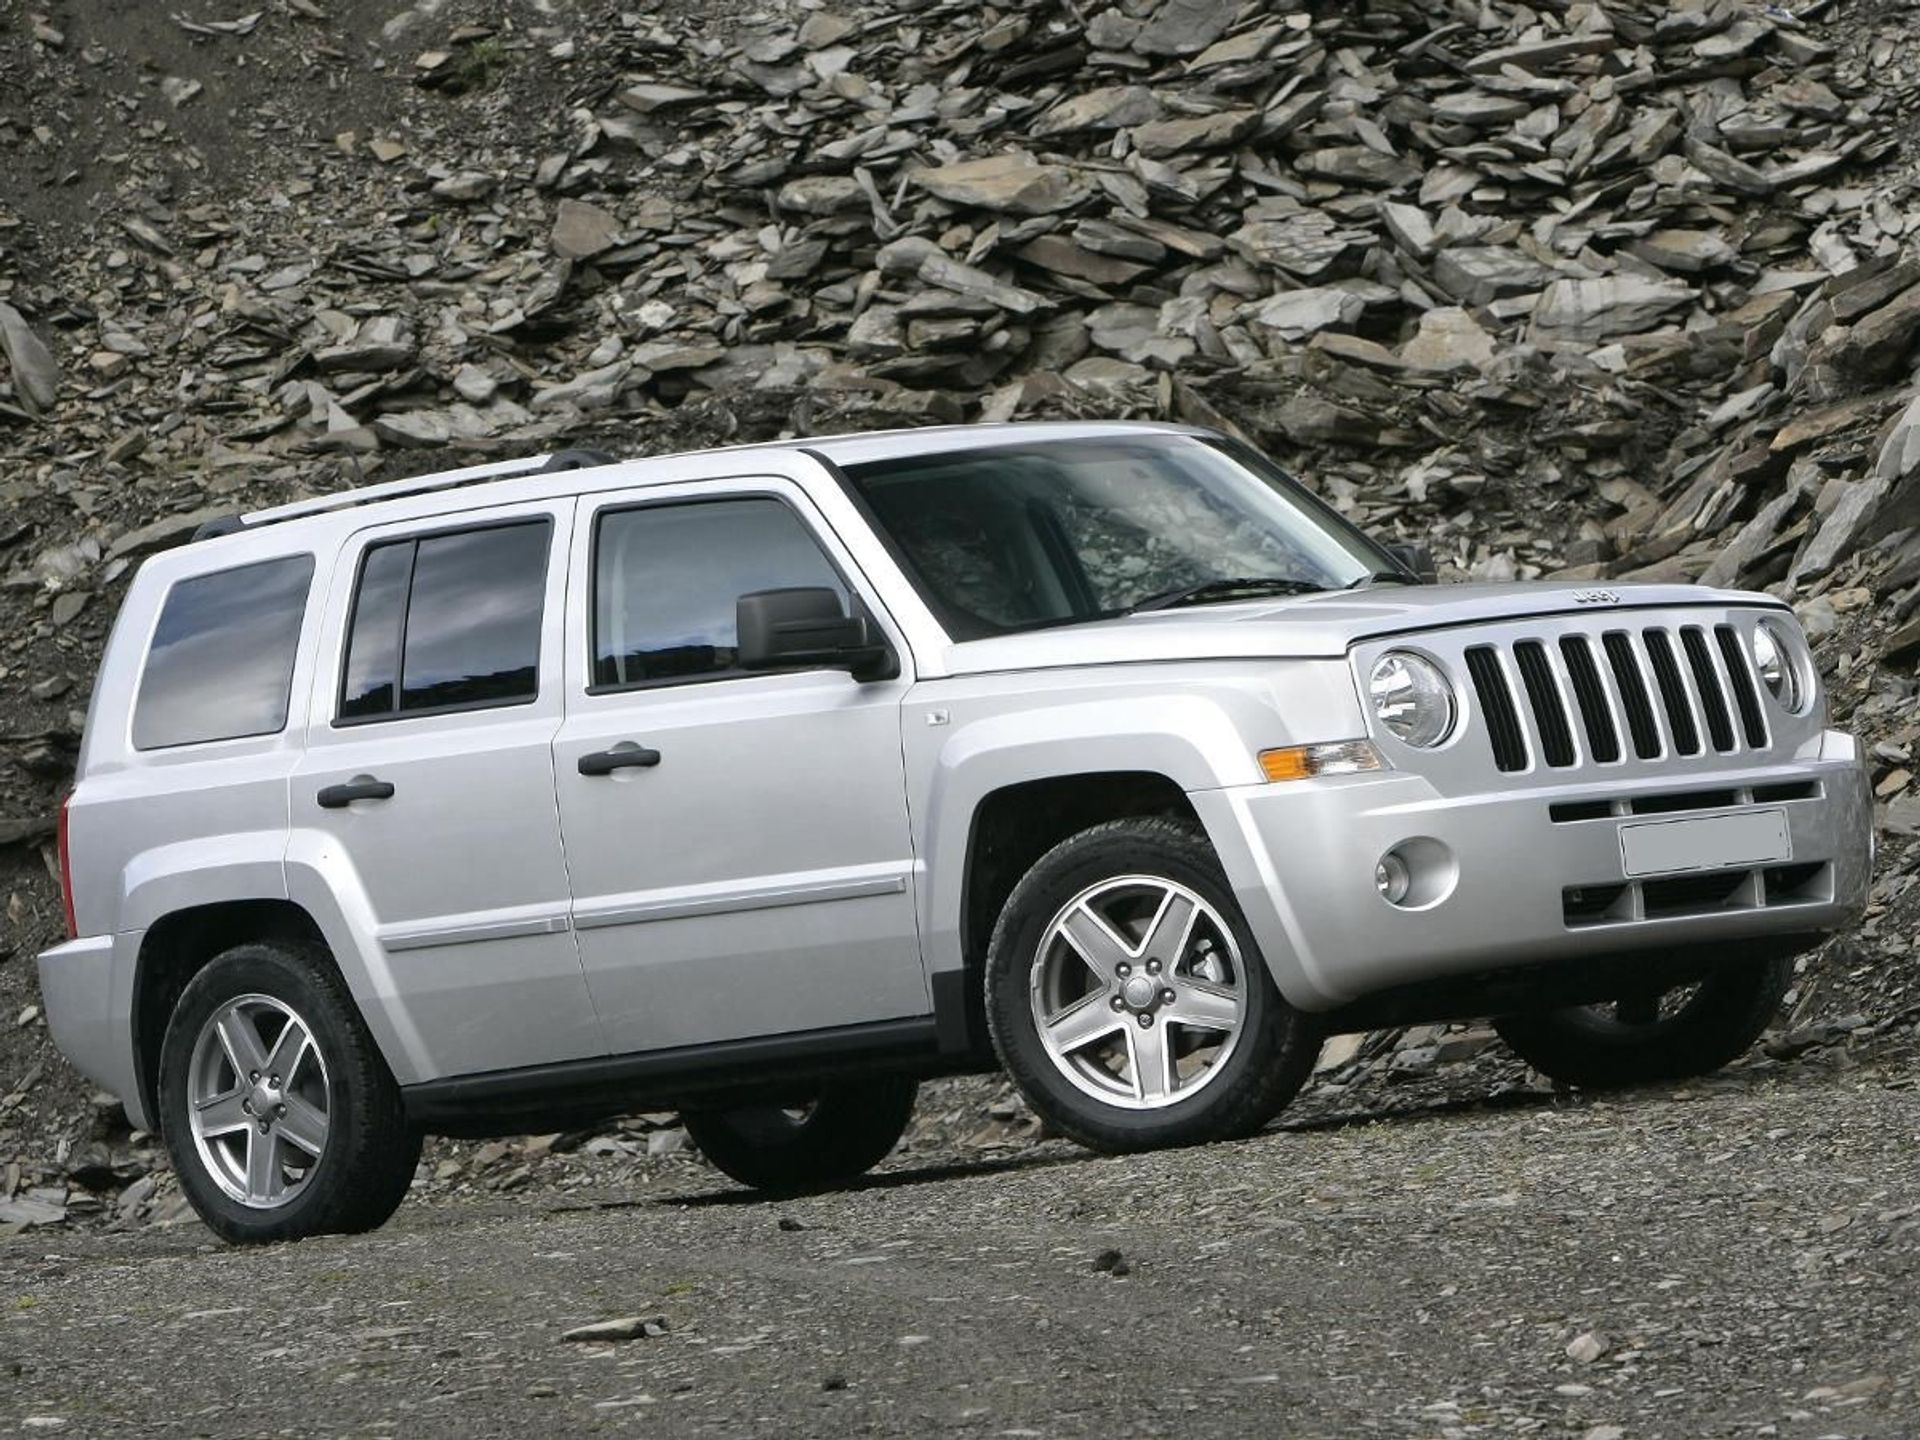 Jeep Patriot Sport image